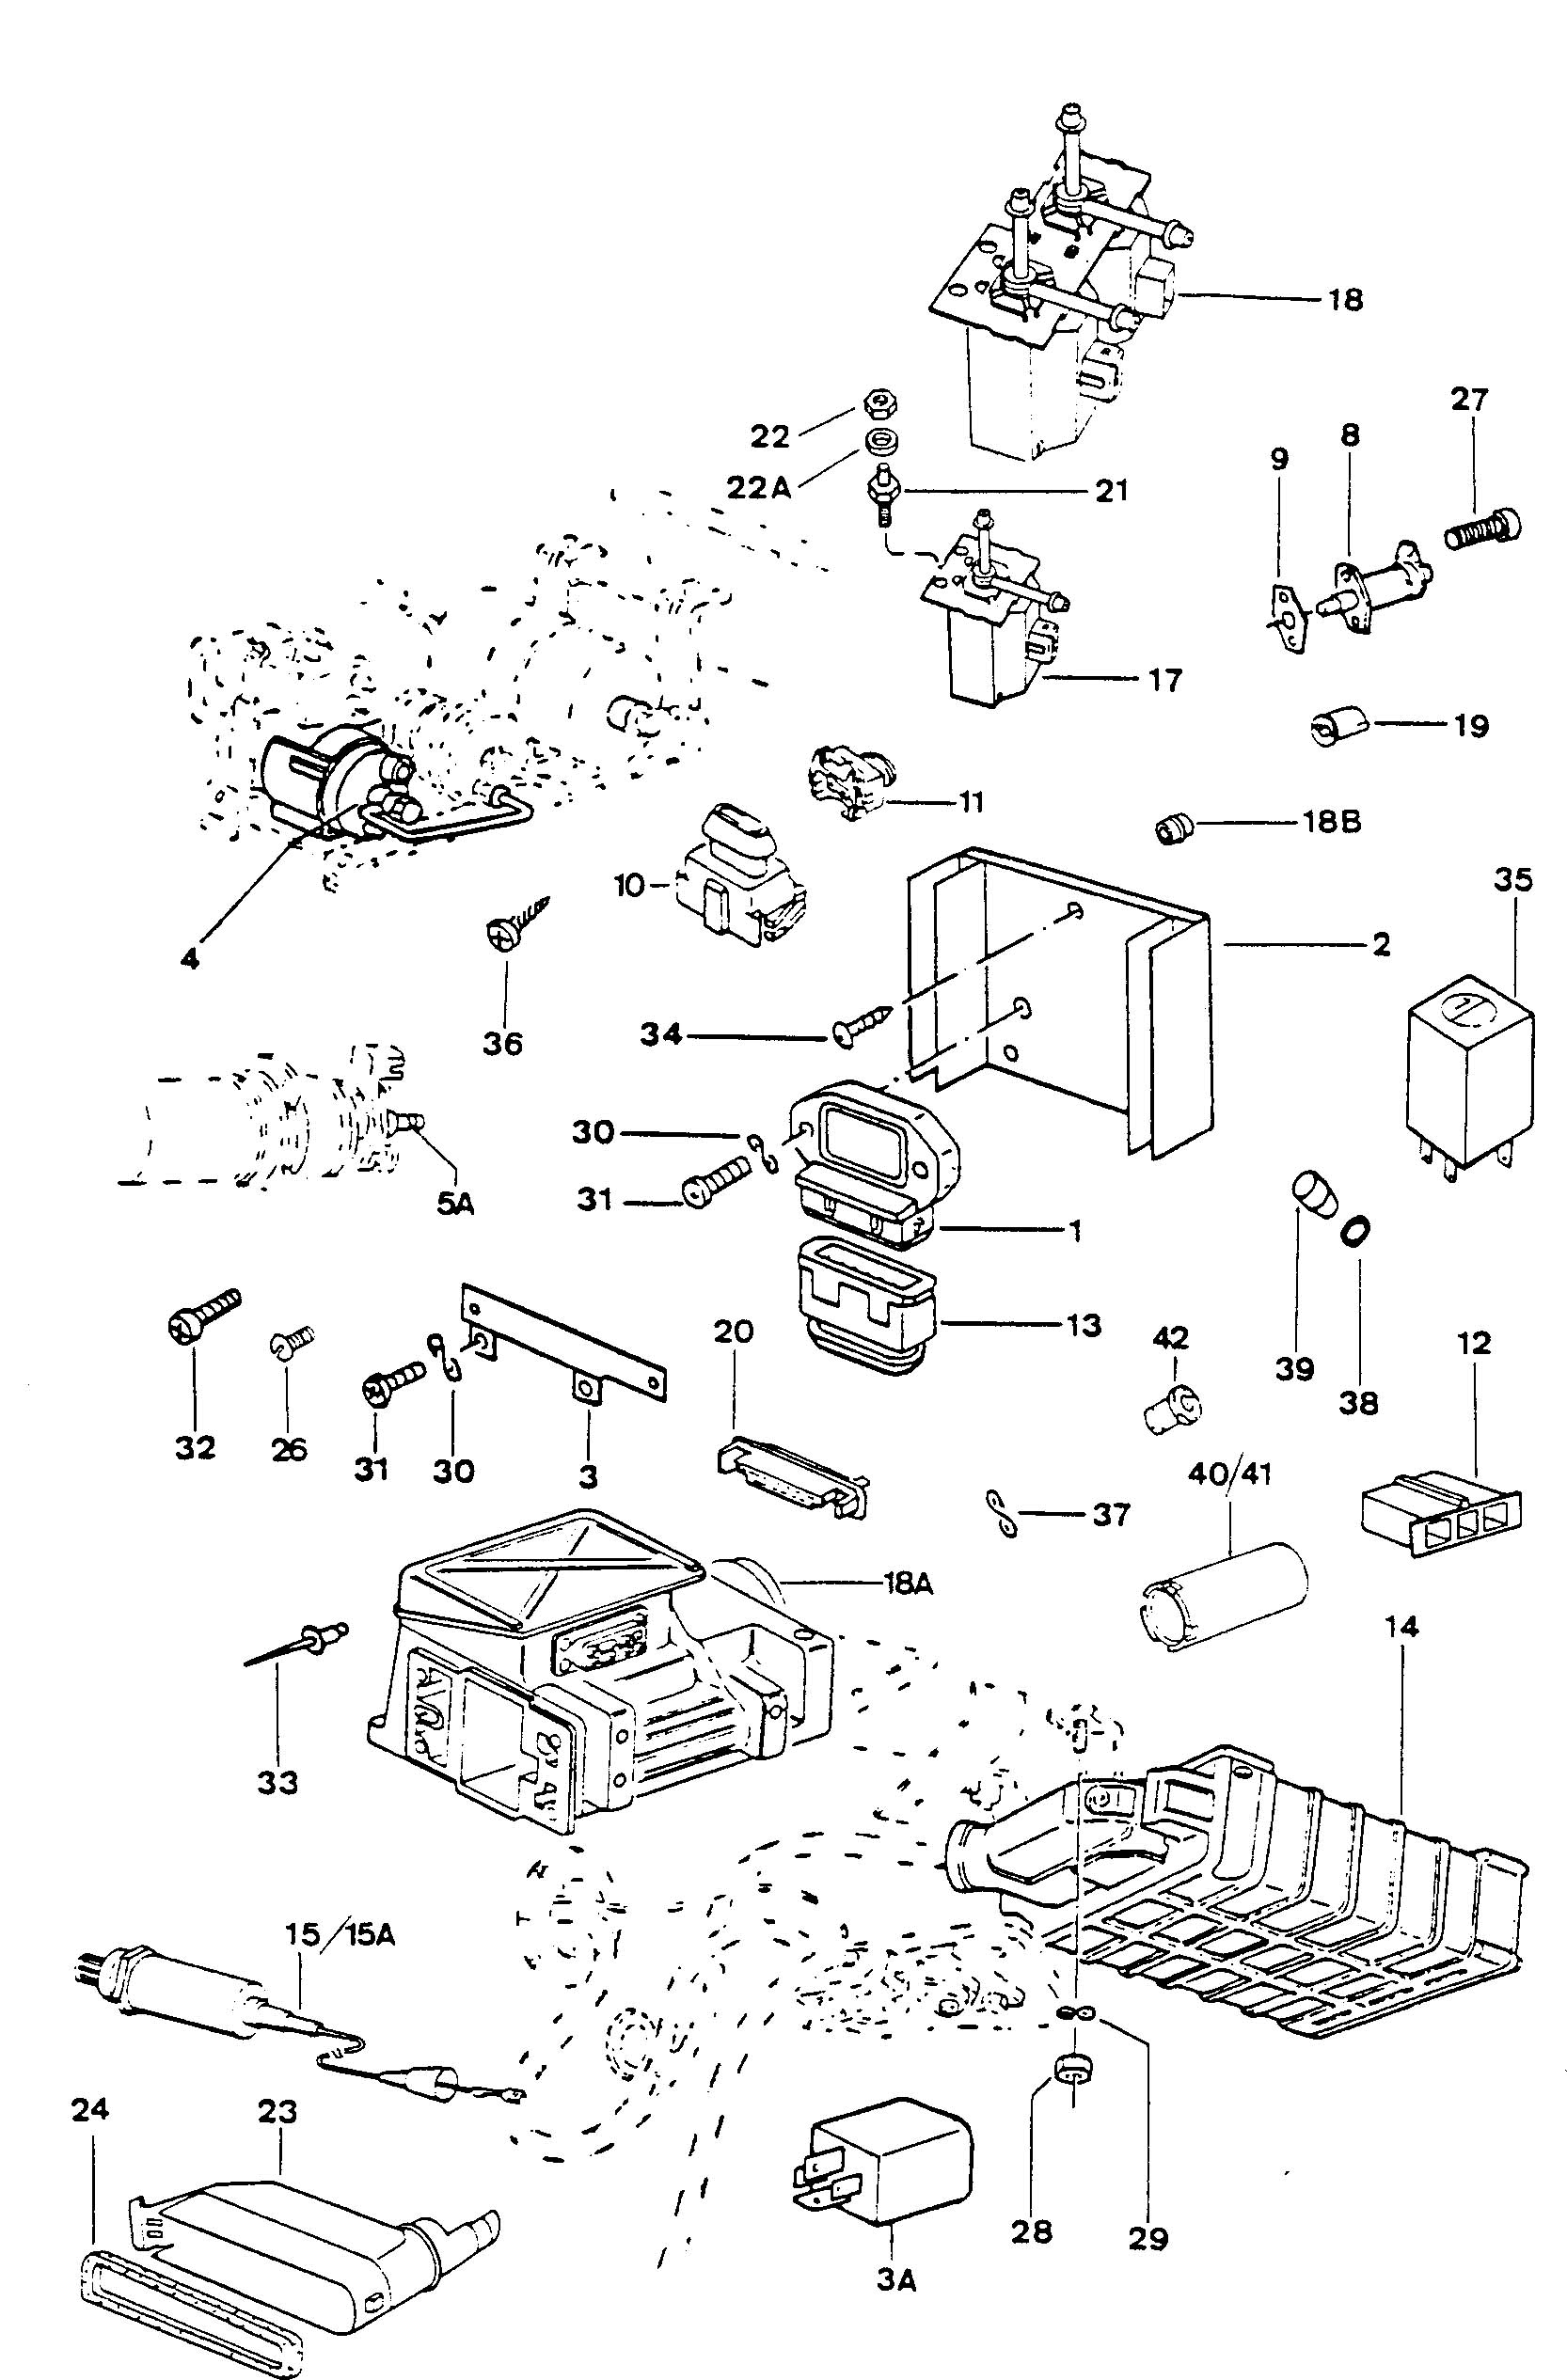 89 Chevy Pickup Wiring Diagram For Radio moreover 1984 Vw Vanagon Engine Diagram likewise 1984 Cucv M1009 Wiring Diagram further Vw 1 8t Camshaft Position Sensor Location likewise Mercedes Benz Vin Number Location. on 1985 vw cabriolet wiring harness